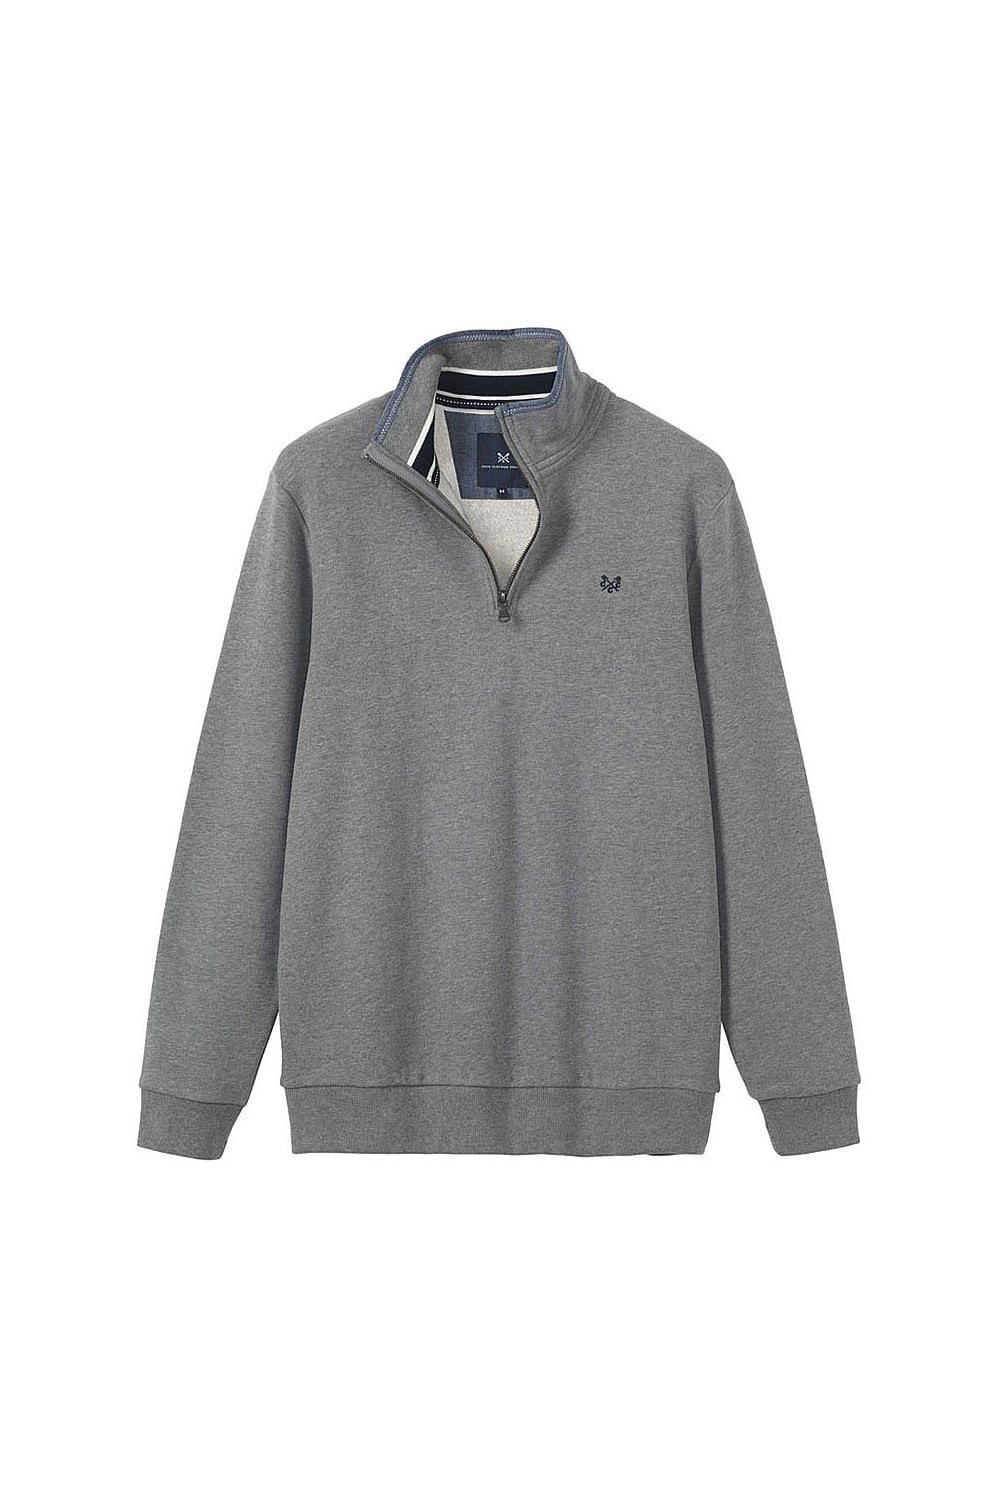 d69723c632c4 Crew Clothing Mens Classic Half Zip Sweat - Grey Marl - Menswear from  Potters of Buxton UK